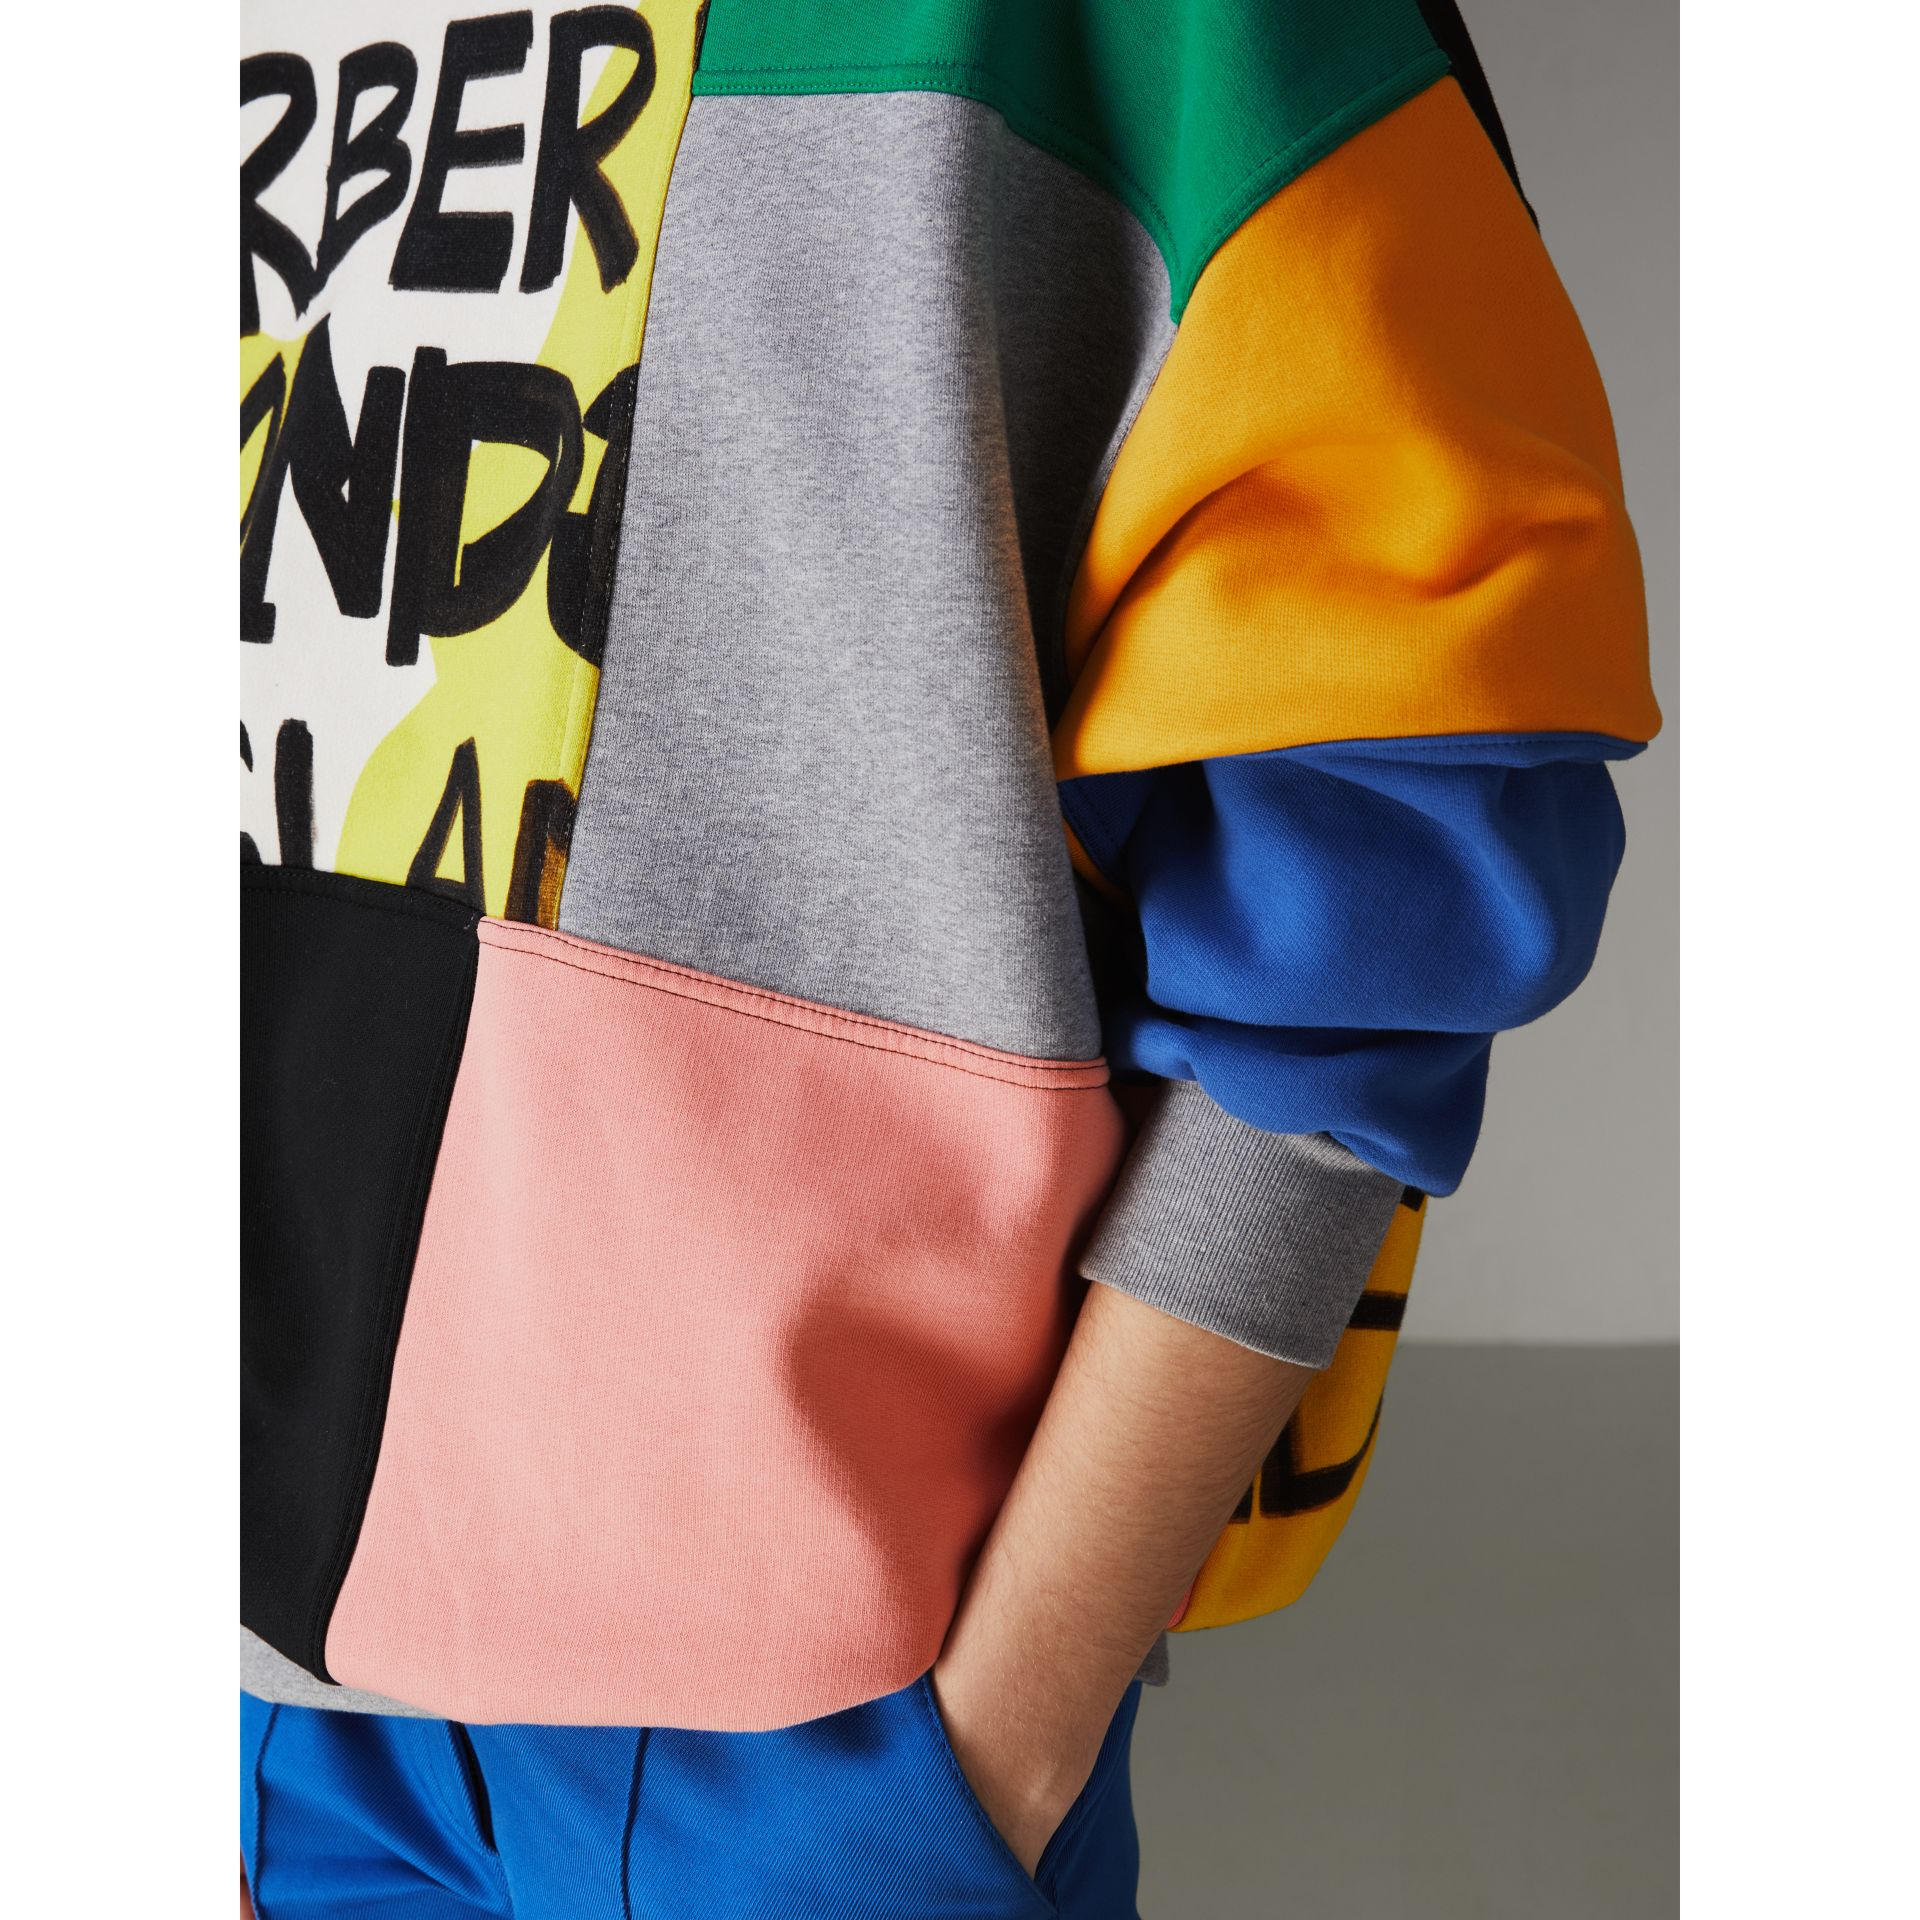 Graffiti Print Panel Cotton Blend Sweatshirt in Multicolour - Women | Burberry Singapore - gallery image 1